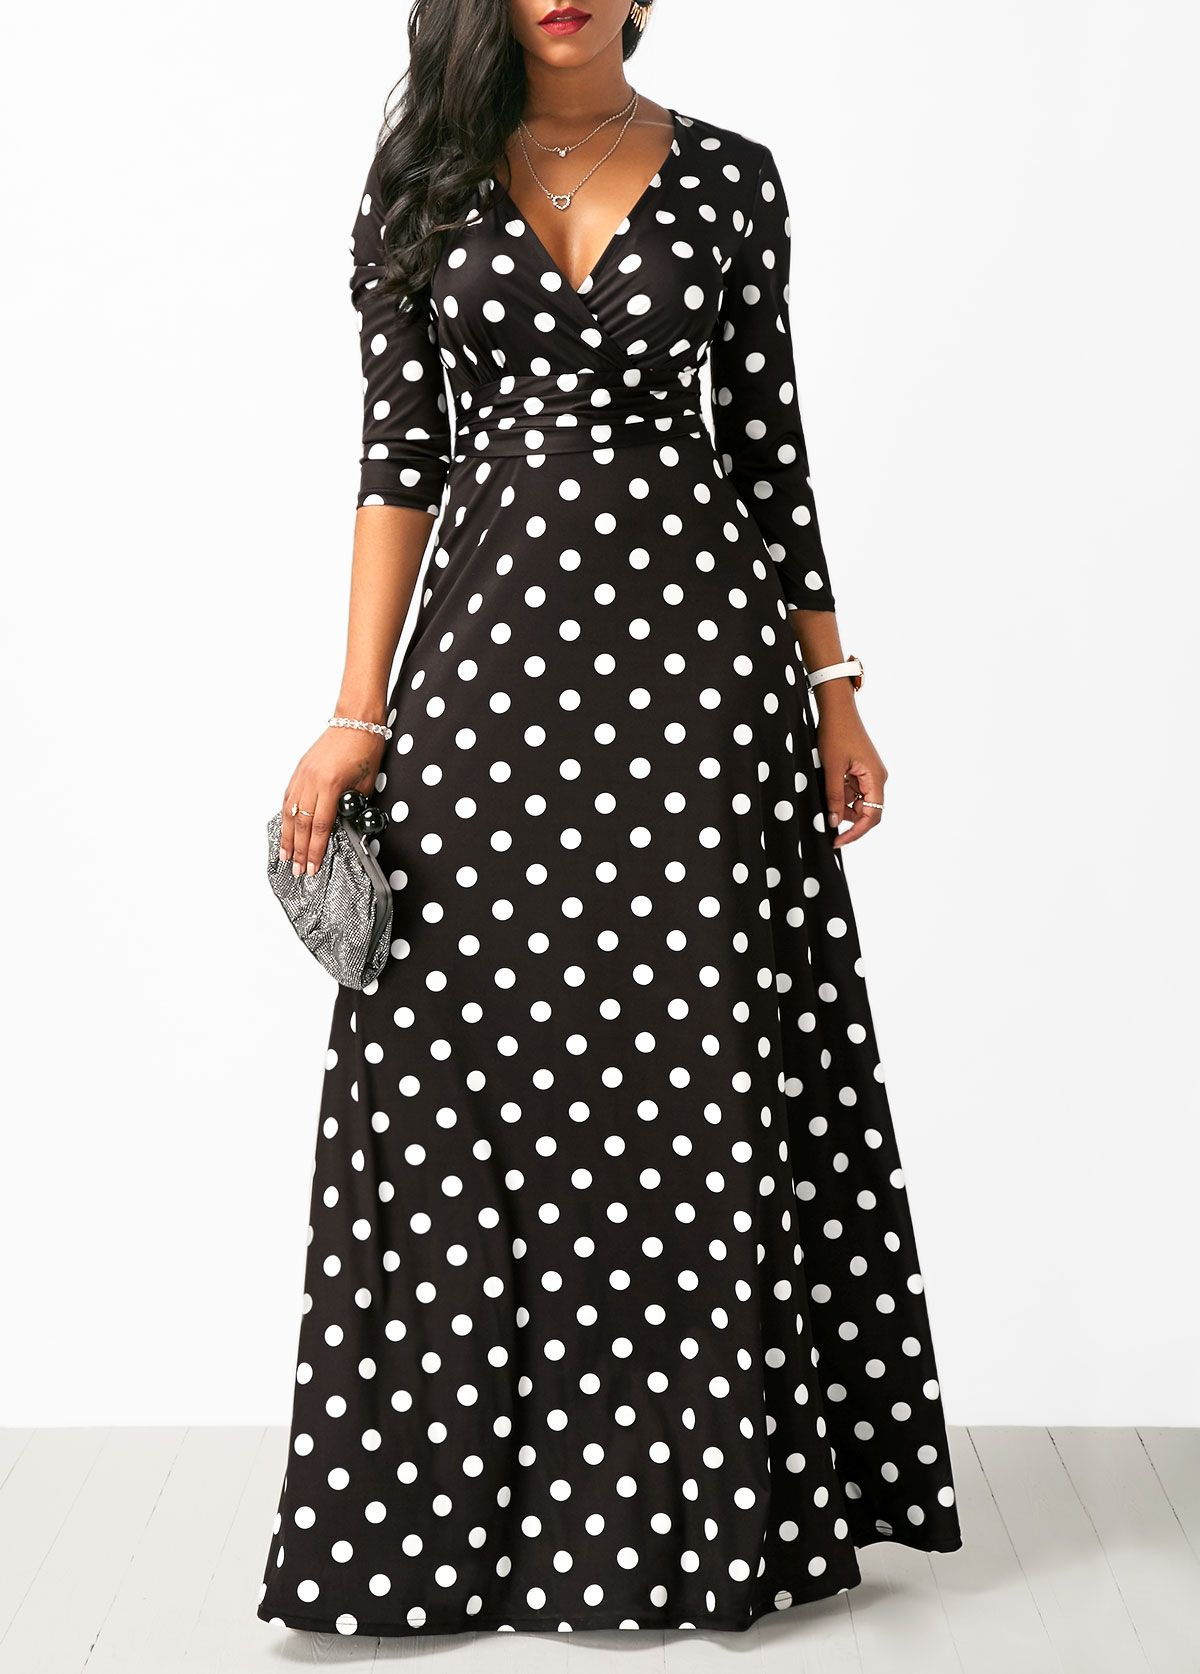 cc81cba0f5 Polka Dot Print High Waist Black Maxi Dress